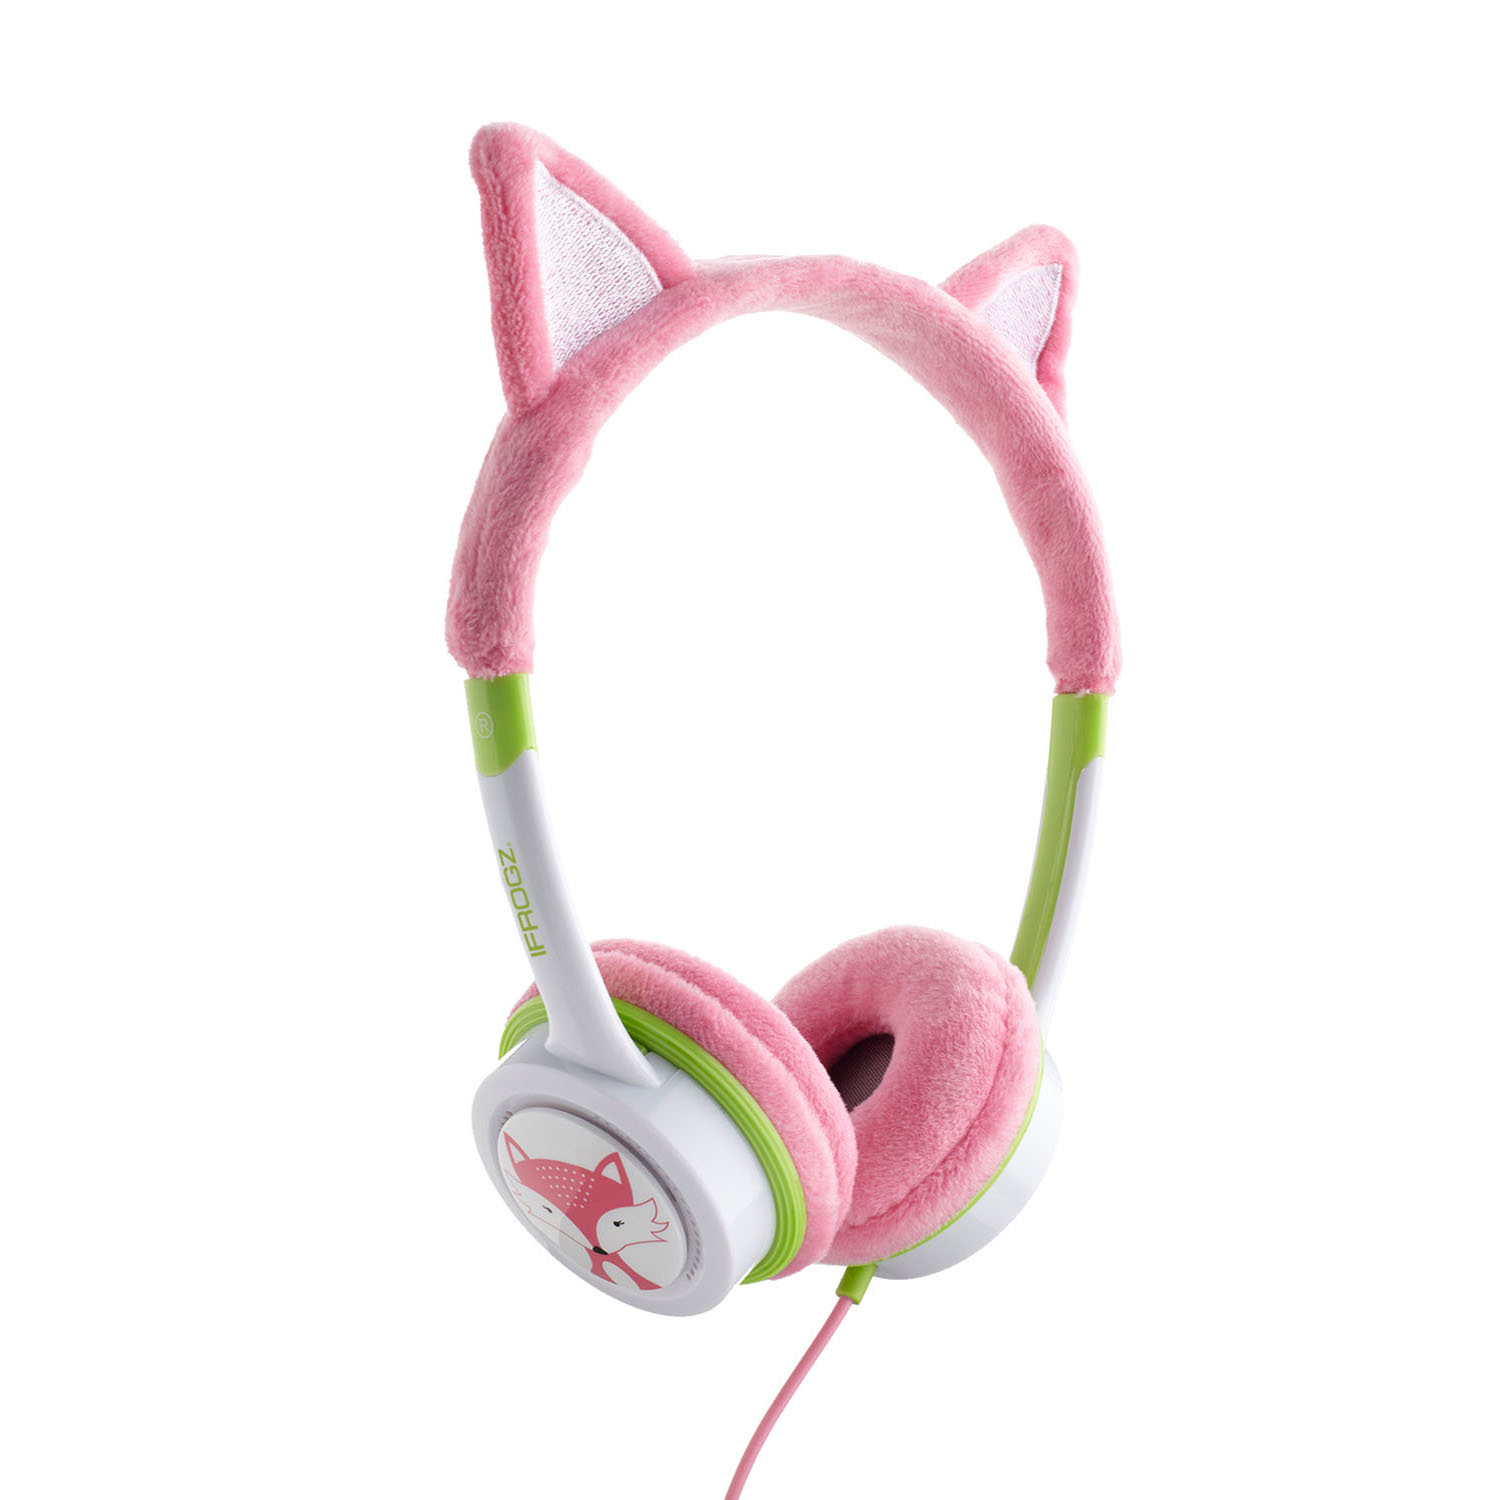 iFrogz by ZAGG Little Rockerz Costume Headphones Kitten: Kid-Friendly Volume Limiting Headphones | Dress up Your Kids' Music!